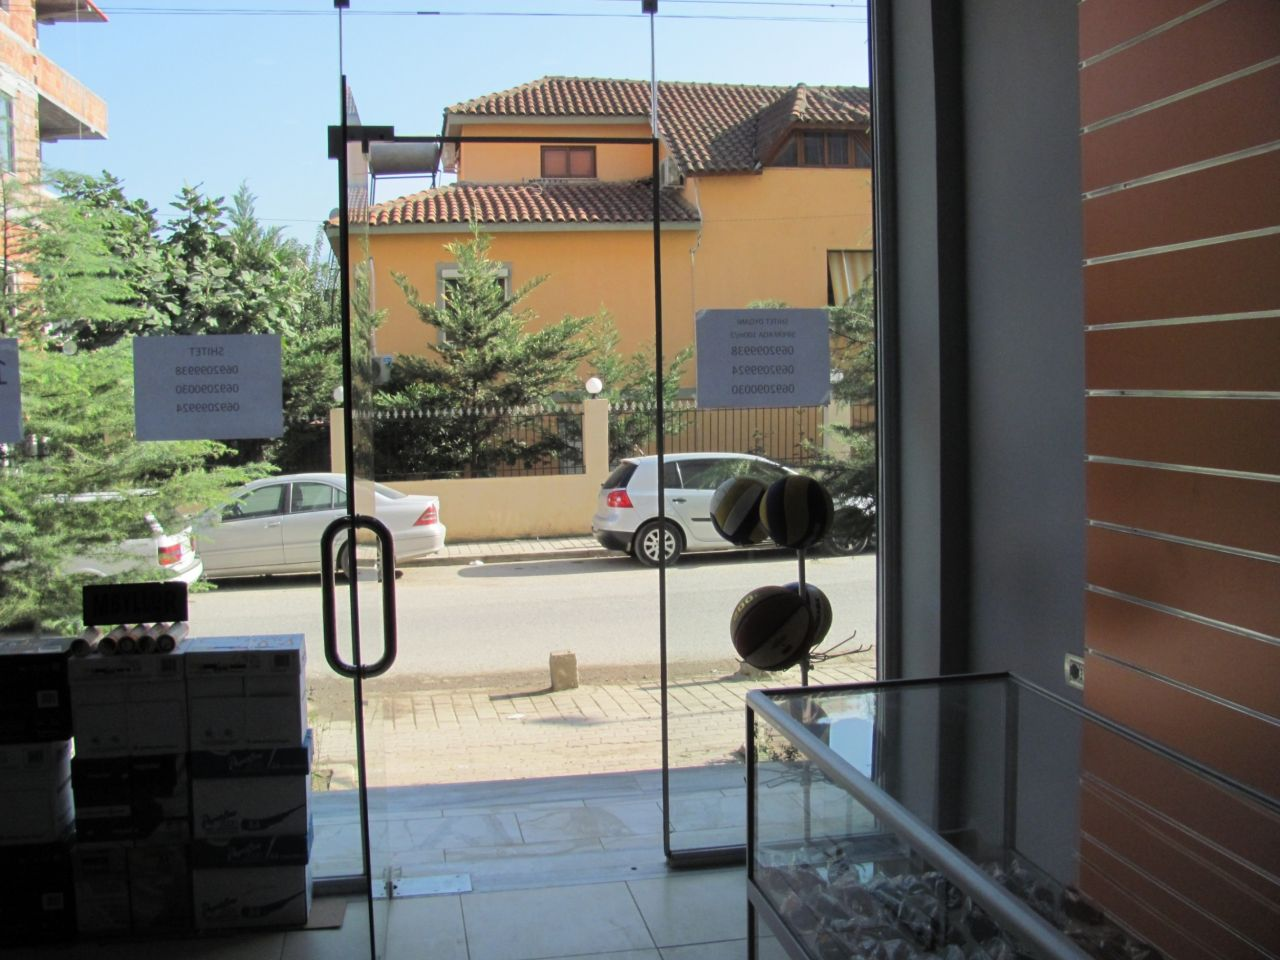 Shop for sale in Tirana Albania situated in a new residential block